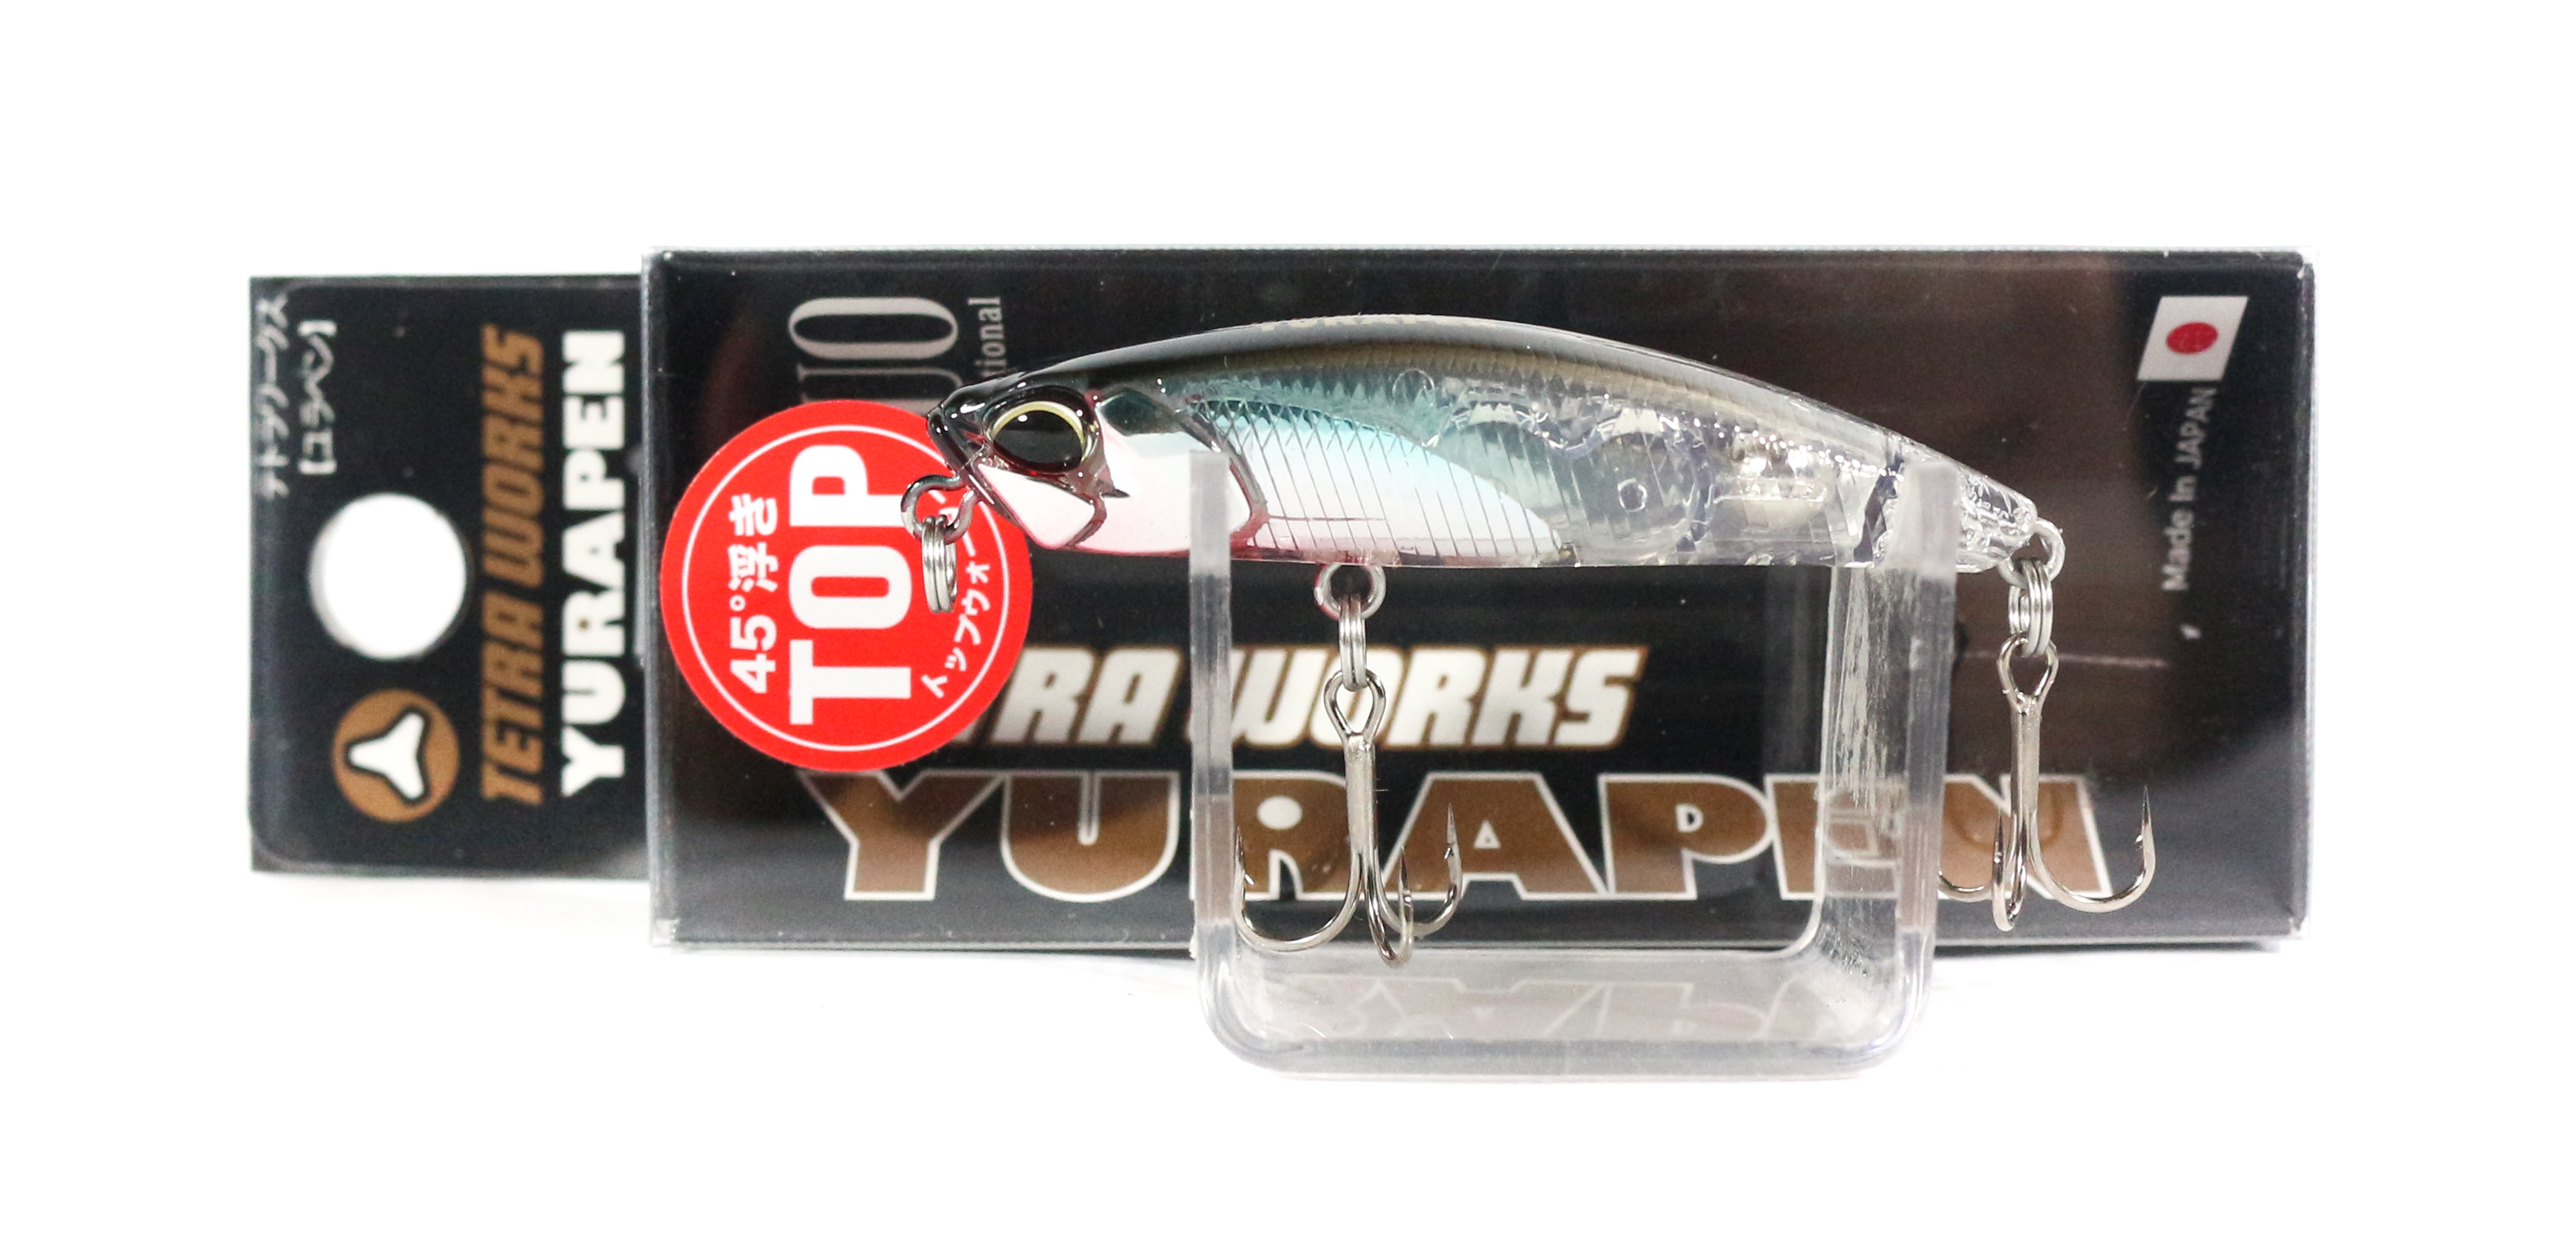 Duo Tetra Works Yurapen 48 mm Floating Lure DSH0115 (5086)